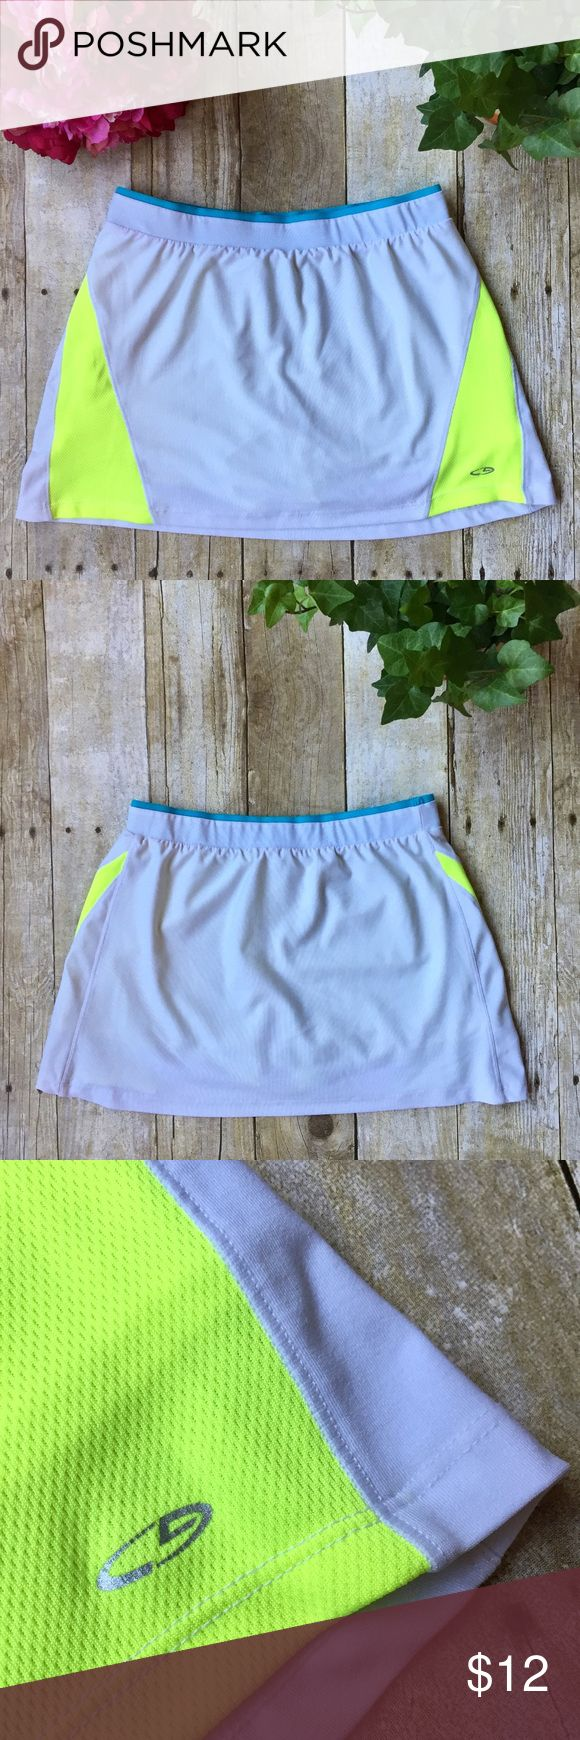 Champion Active Skirt/Skort Girls L Women's XXS Champion Active Skirt/Skort Girls L Women's XXS  • Size Girls Large • Can fit Women's size XXS • Active | Athletic | Tennis | Cheer | Dance | Skirt/Skort • White w/ electric yellow side panels & turquoise trim • Built-in electric/neon yellow shorts • Breathable, sweat-wicking, dri-fit-like material • Polyester/Spandex • Excellent used condition; no flaws   Make an offer! Sorry, no trades! 💛 Champion Bottoms Skorts